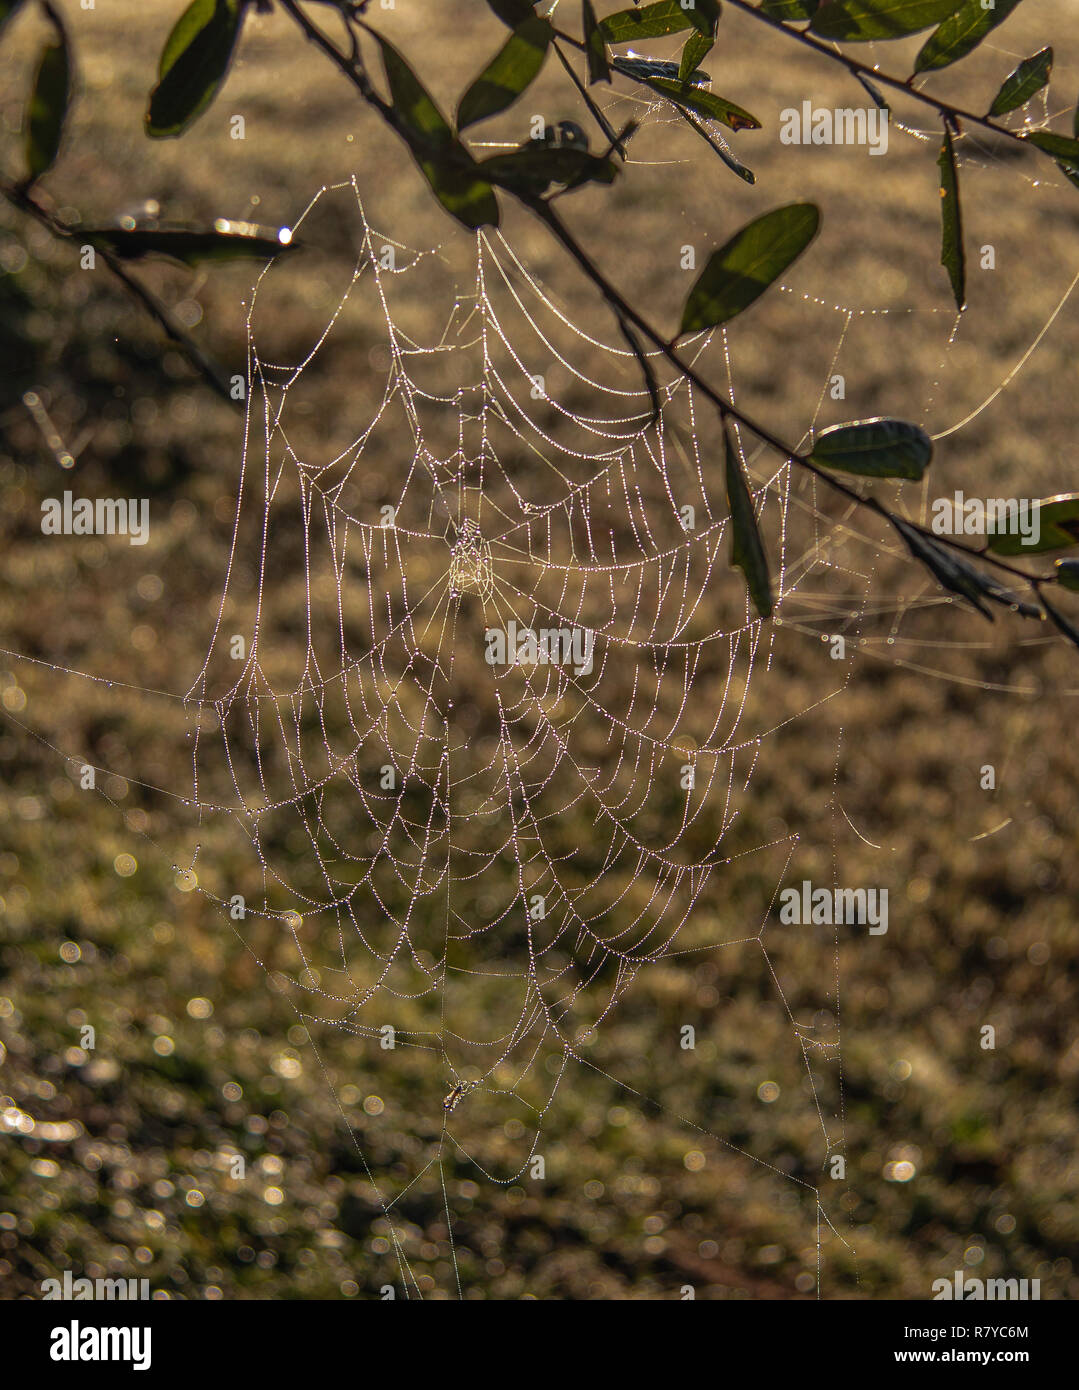 A bedewed spider web is back-lighted by the rising sun on a fall morning. - Stock Image